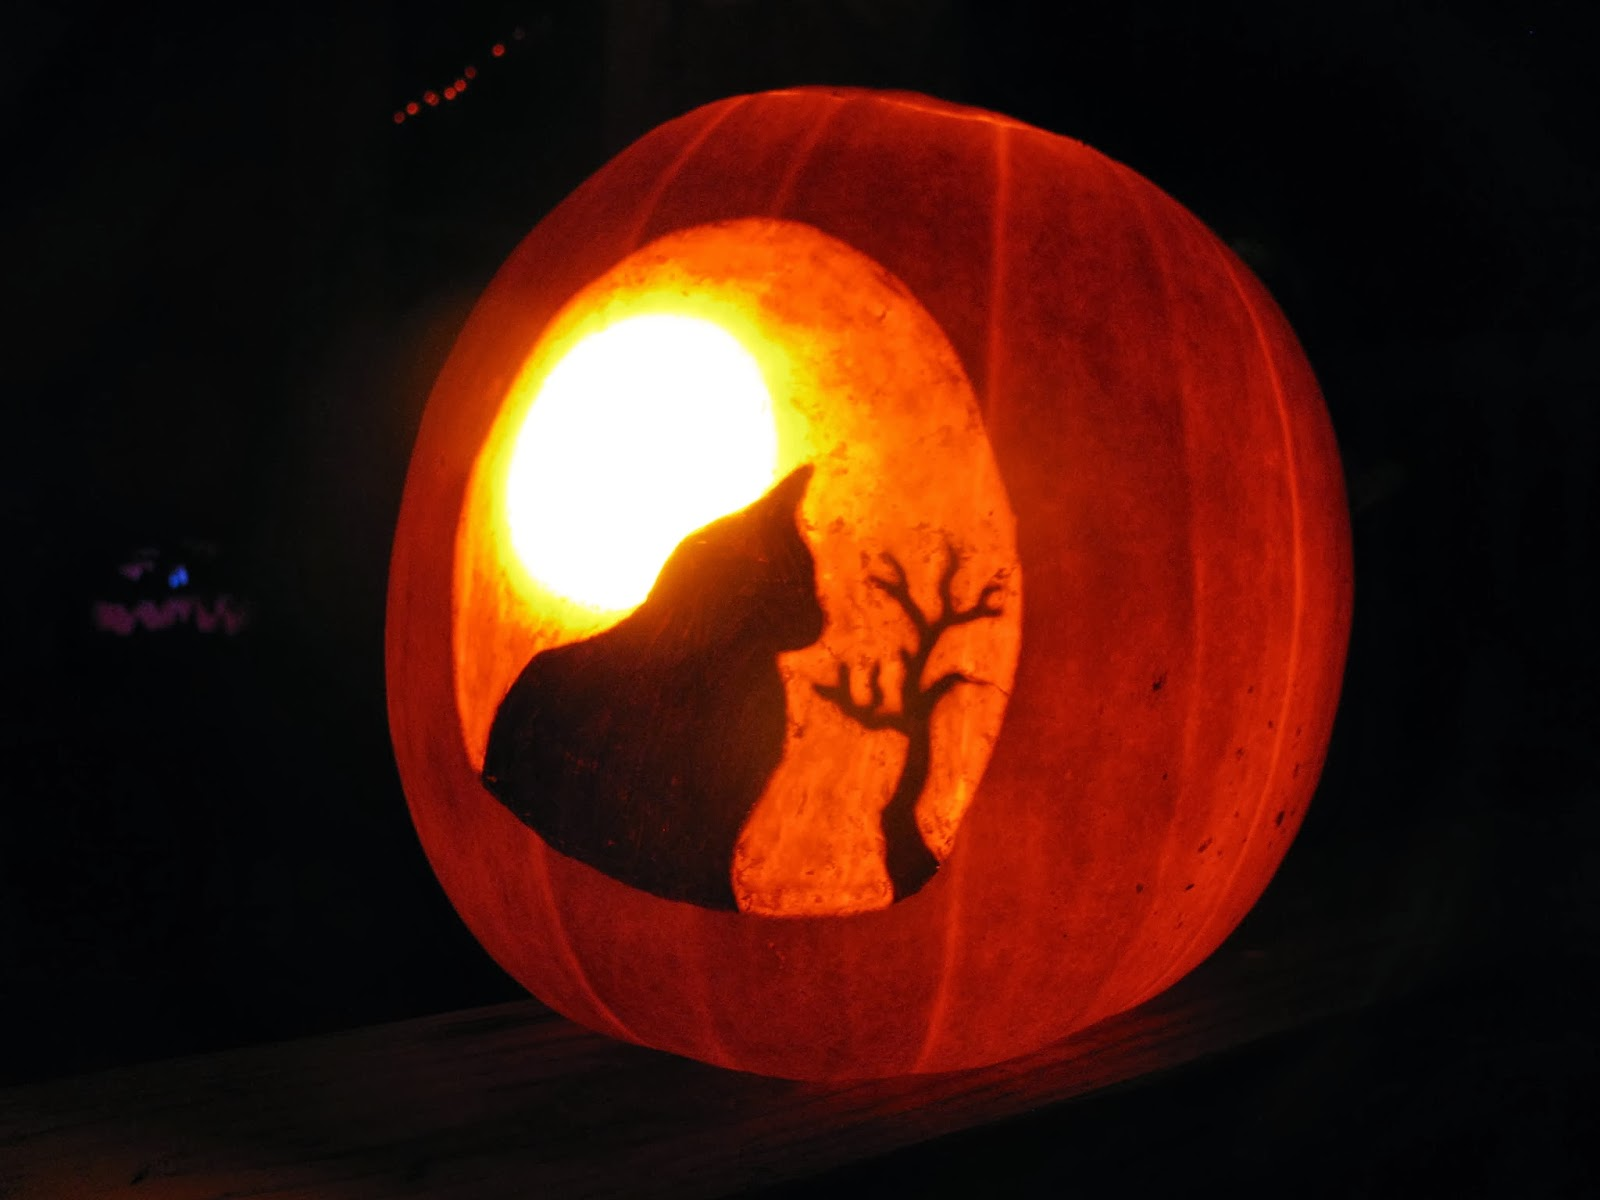 Pumpkin carving ideas for halloween 2017 some of the best Pumpkin carving designs photos